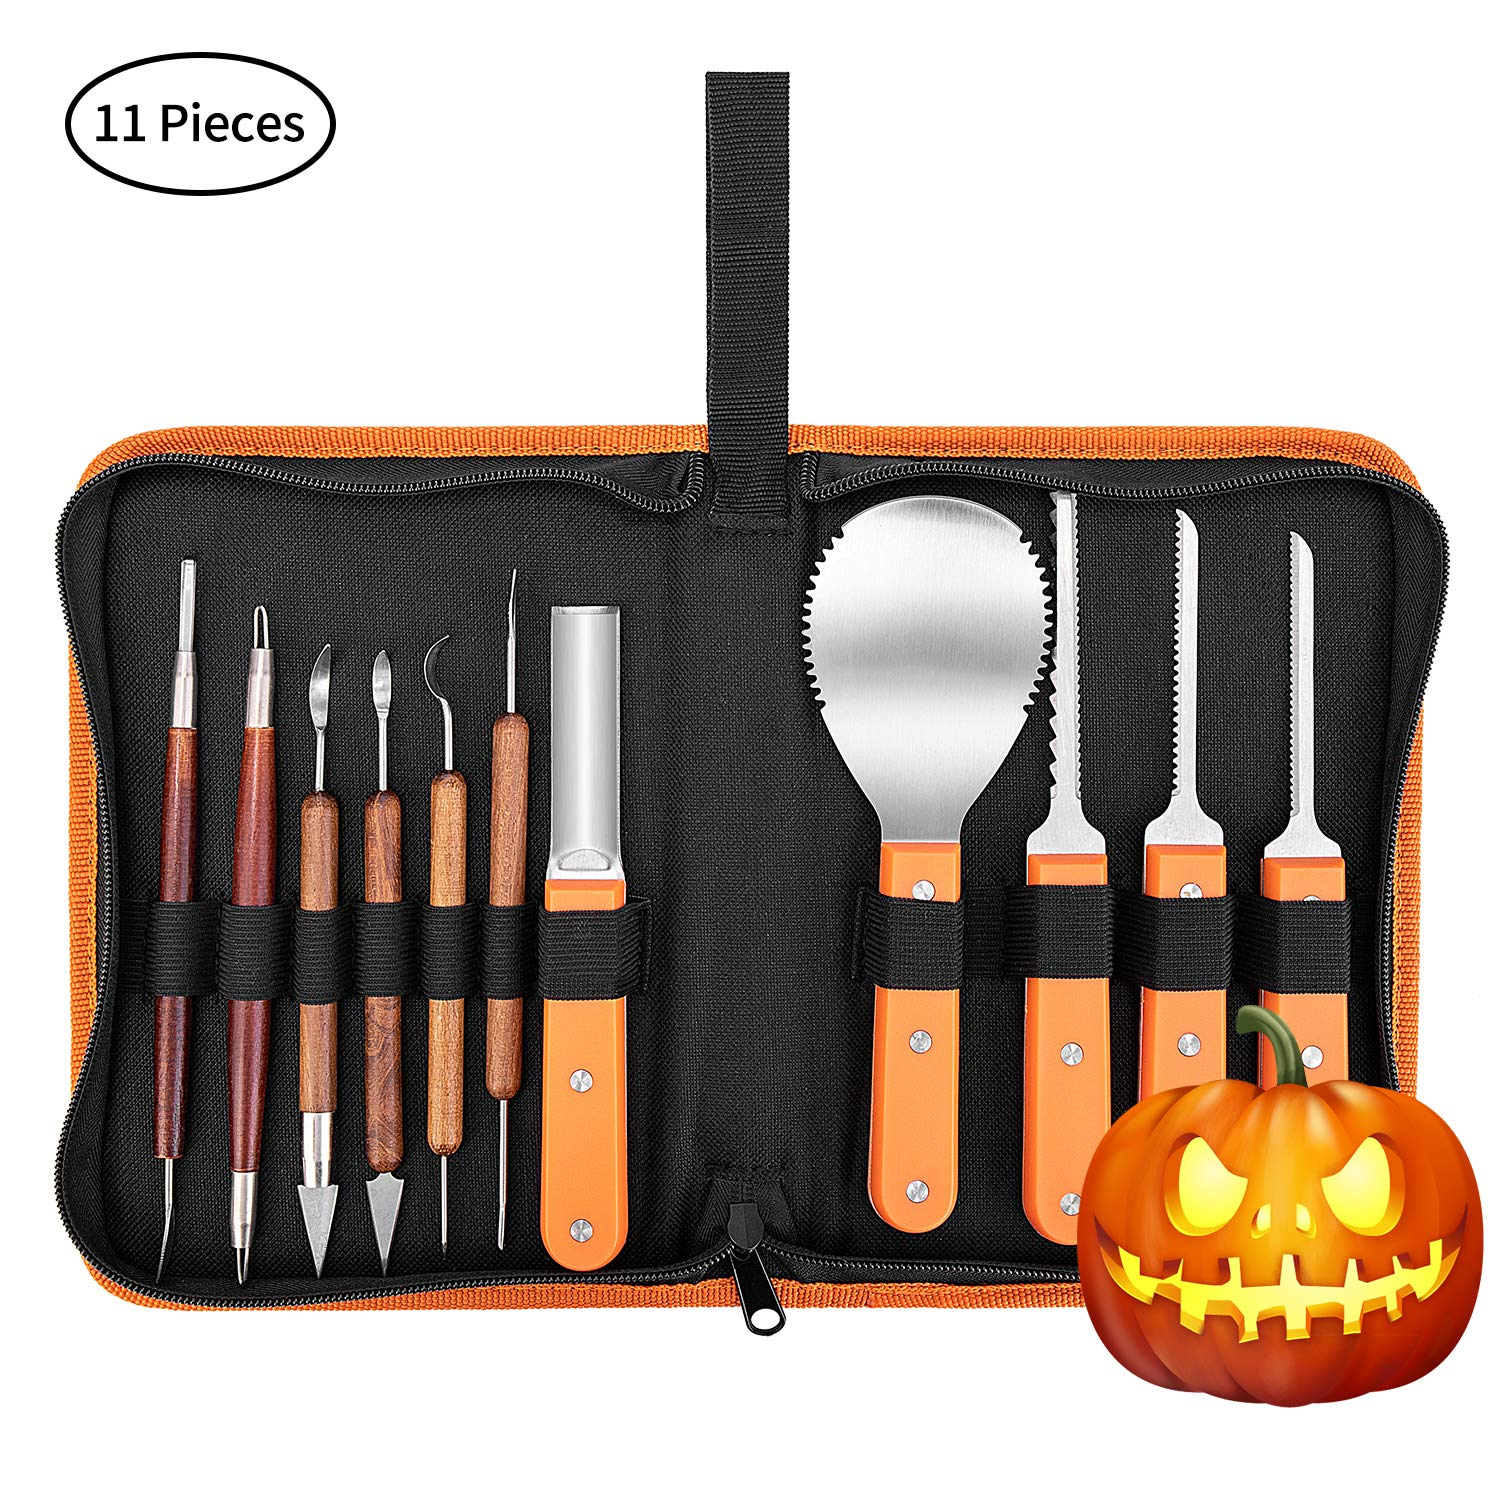 VIVOHOME Stainless Steel 11 Pieces Professional Halloween Pumpkin Carving Tools Kit with Zipper Bag for Kids and Adults by VIVOHOME